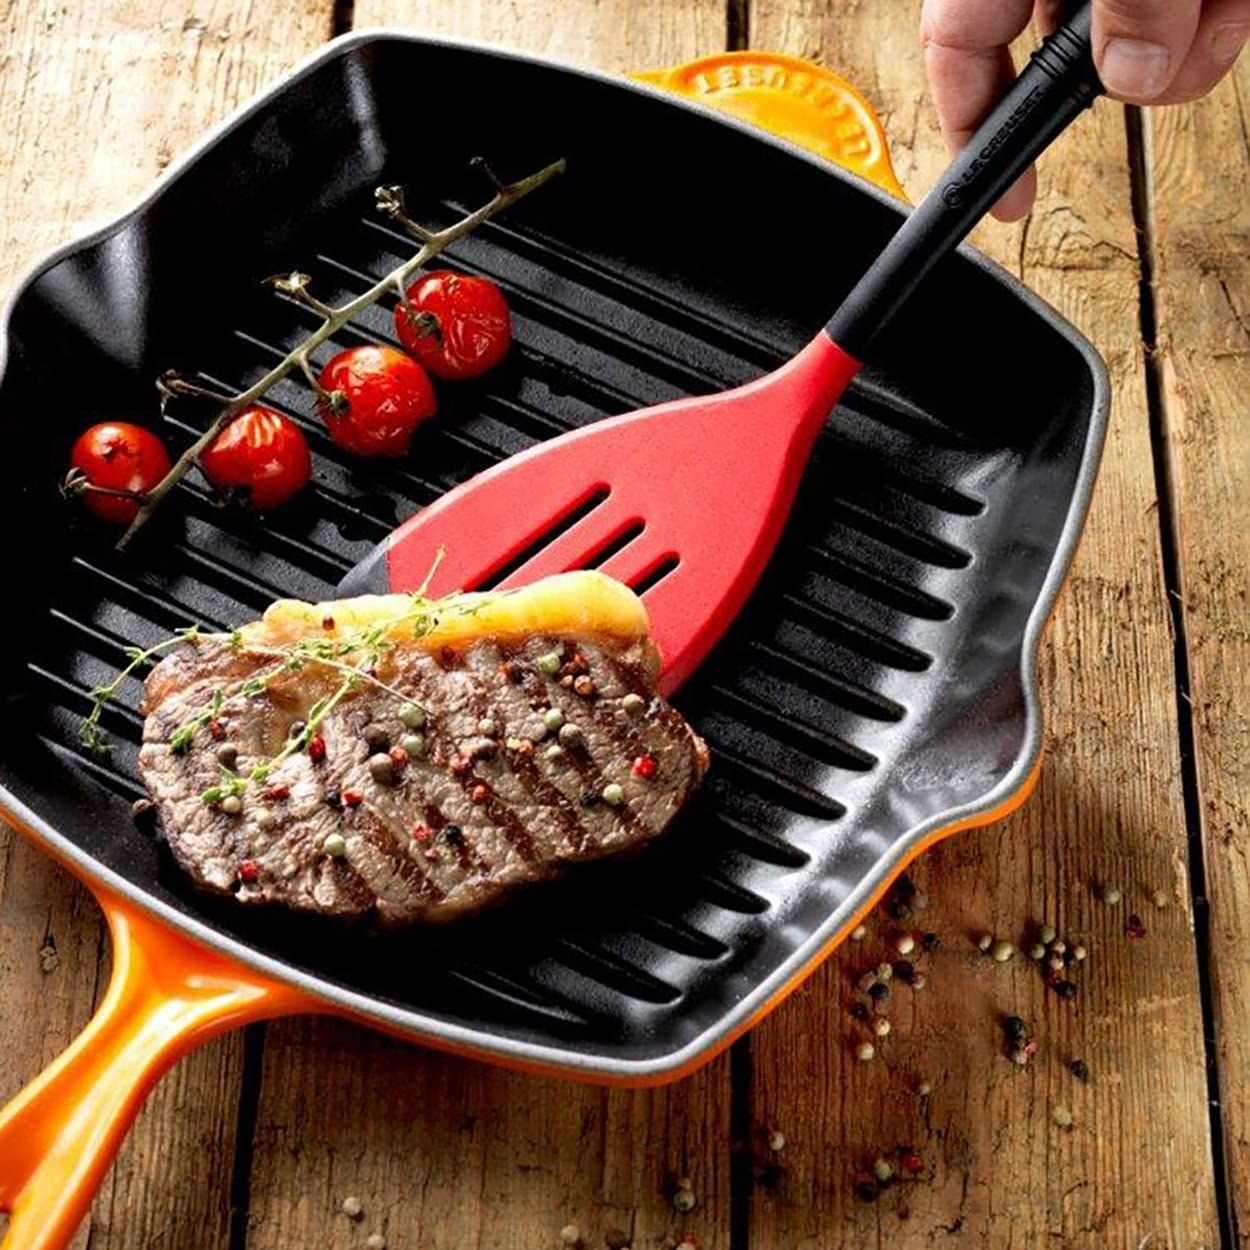 Hand flipping a steak that's grilling in an orange ridged square pan